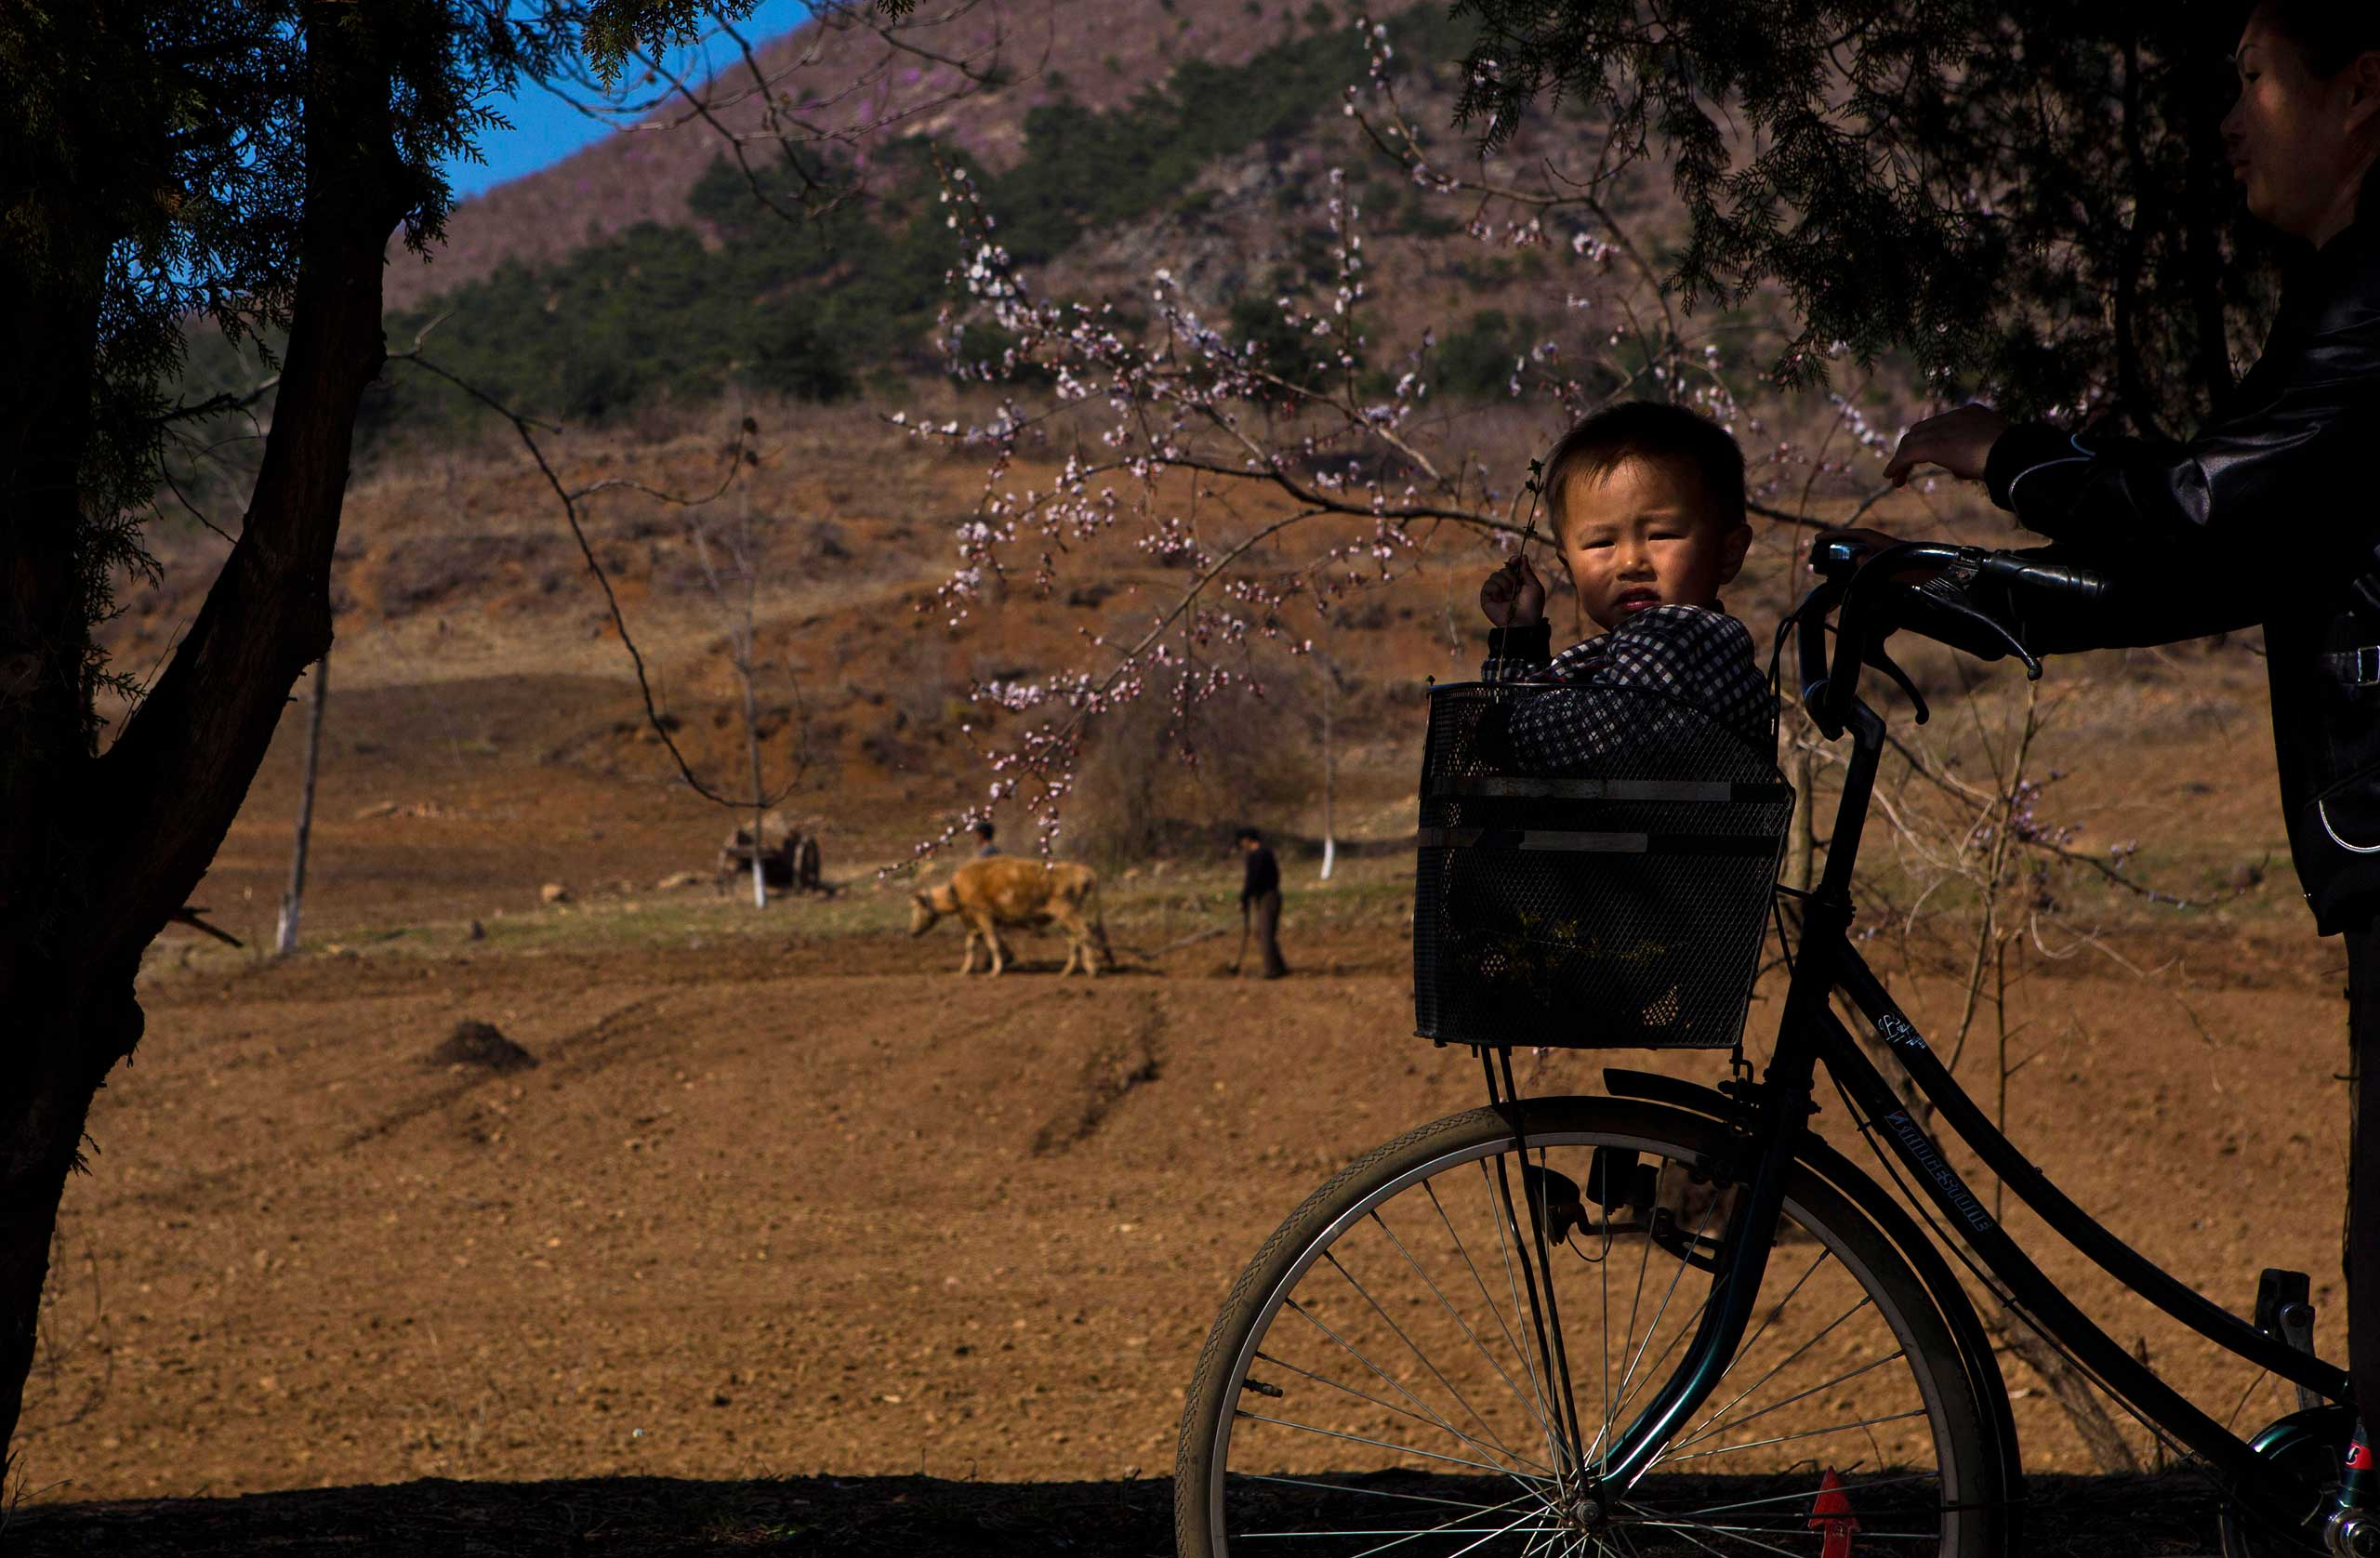 April 24, 2013. A North Korean boy rides in a bicycle basket on a road north of Kaesong, North Korea.